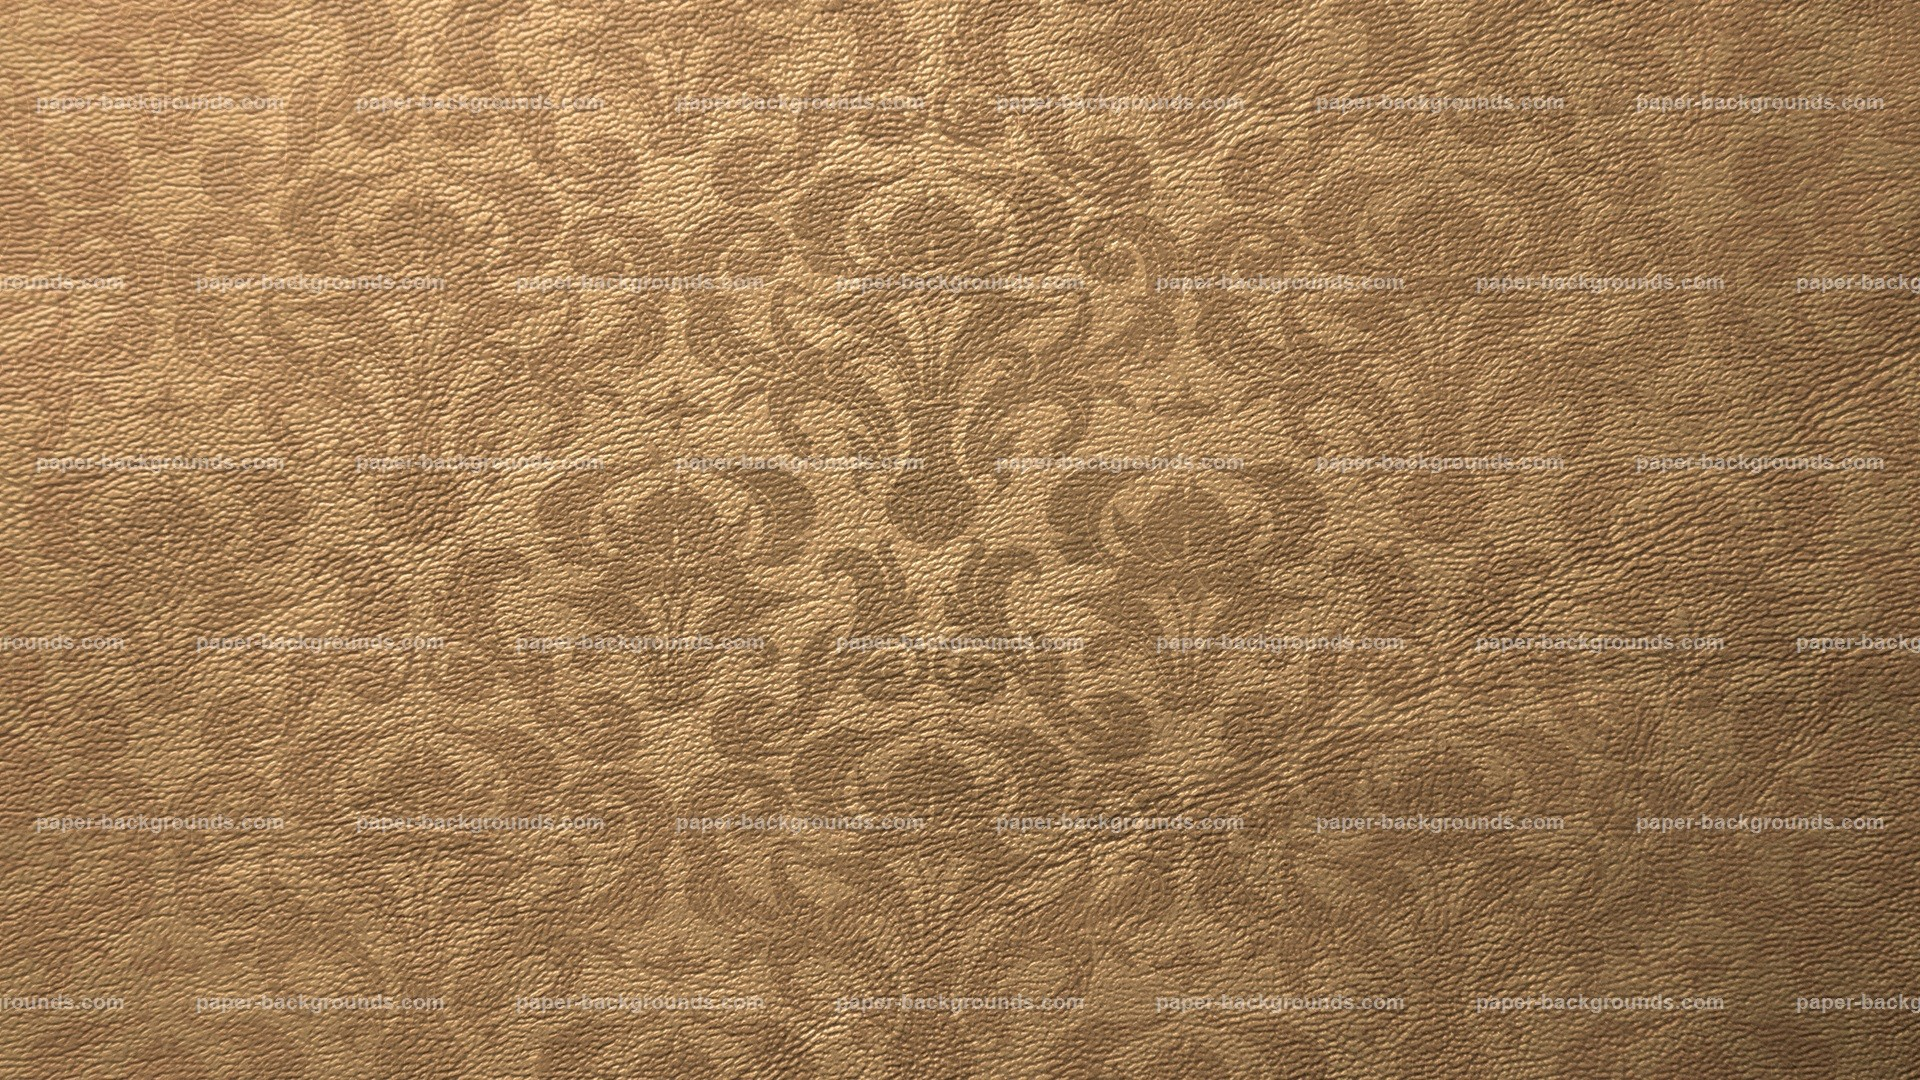 Light Brown Background 1 Download Free Full HD Wallpapers For